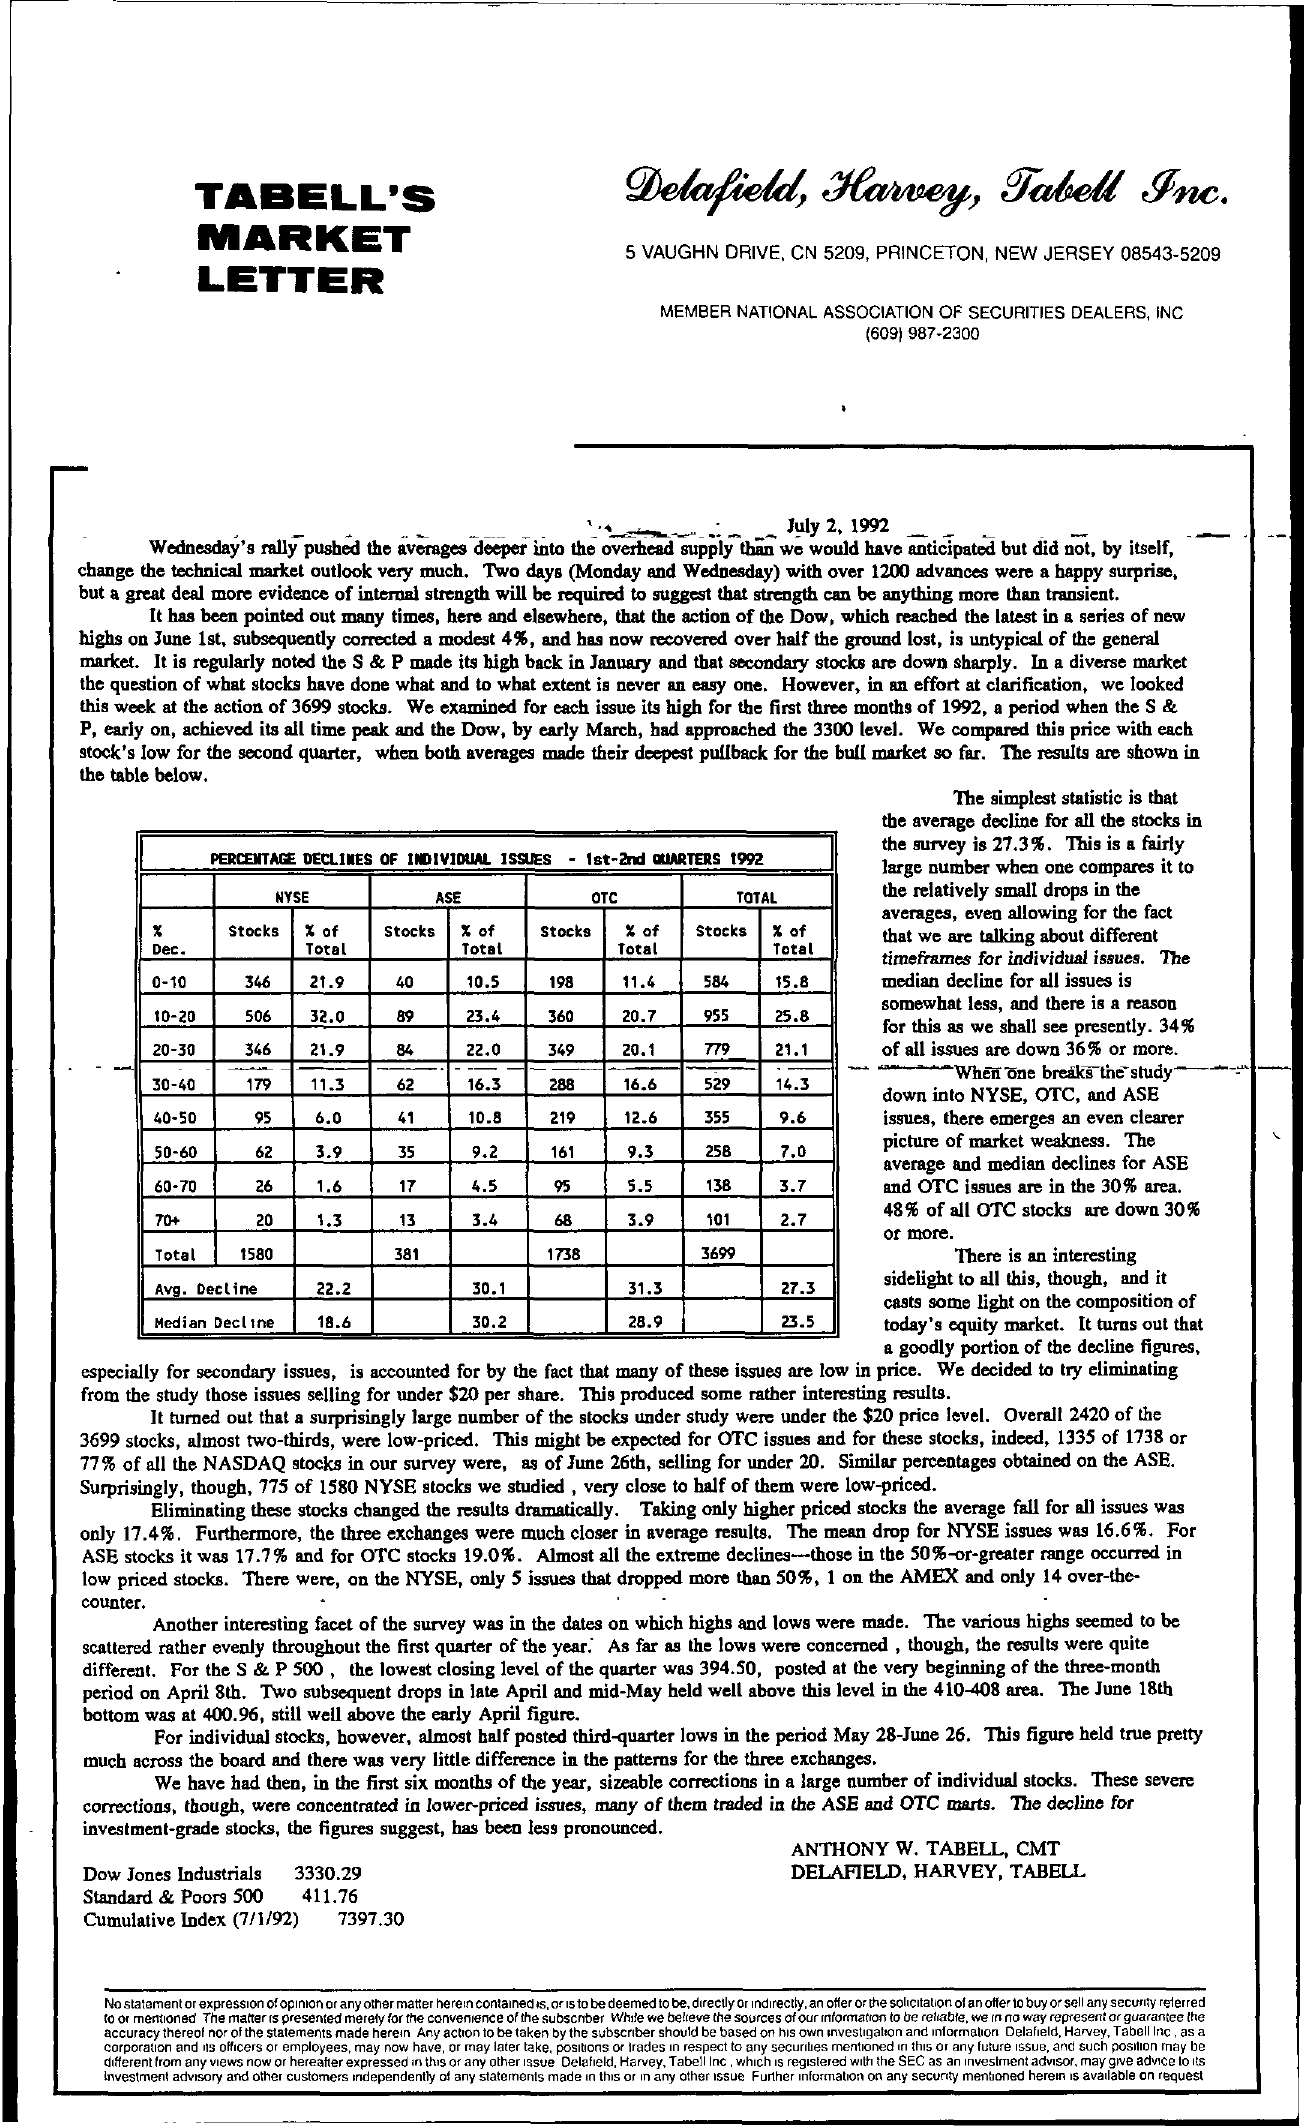 Tabell's Market Letter - July 02, 1992